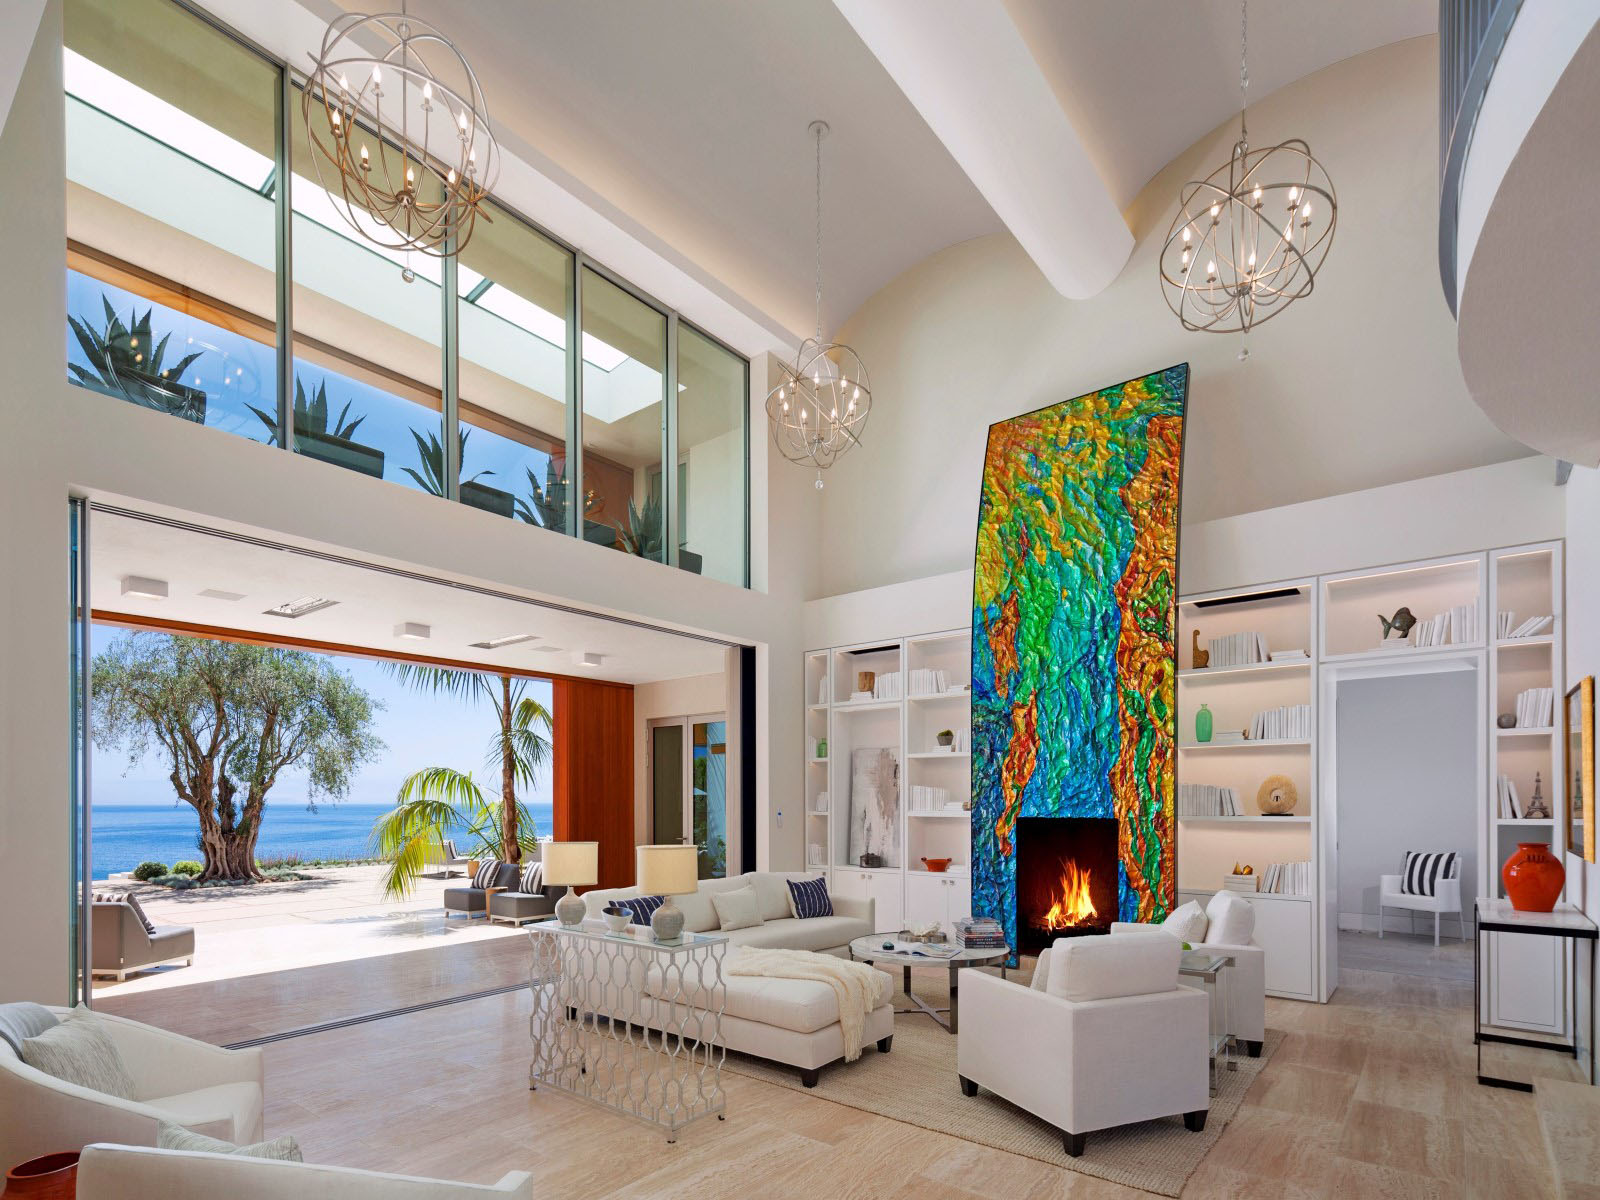 Genial Contemporary Living Room With High Ceiling And Ocean View